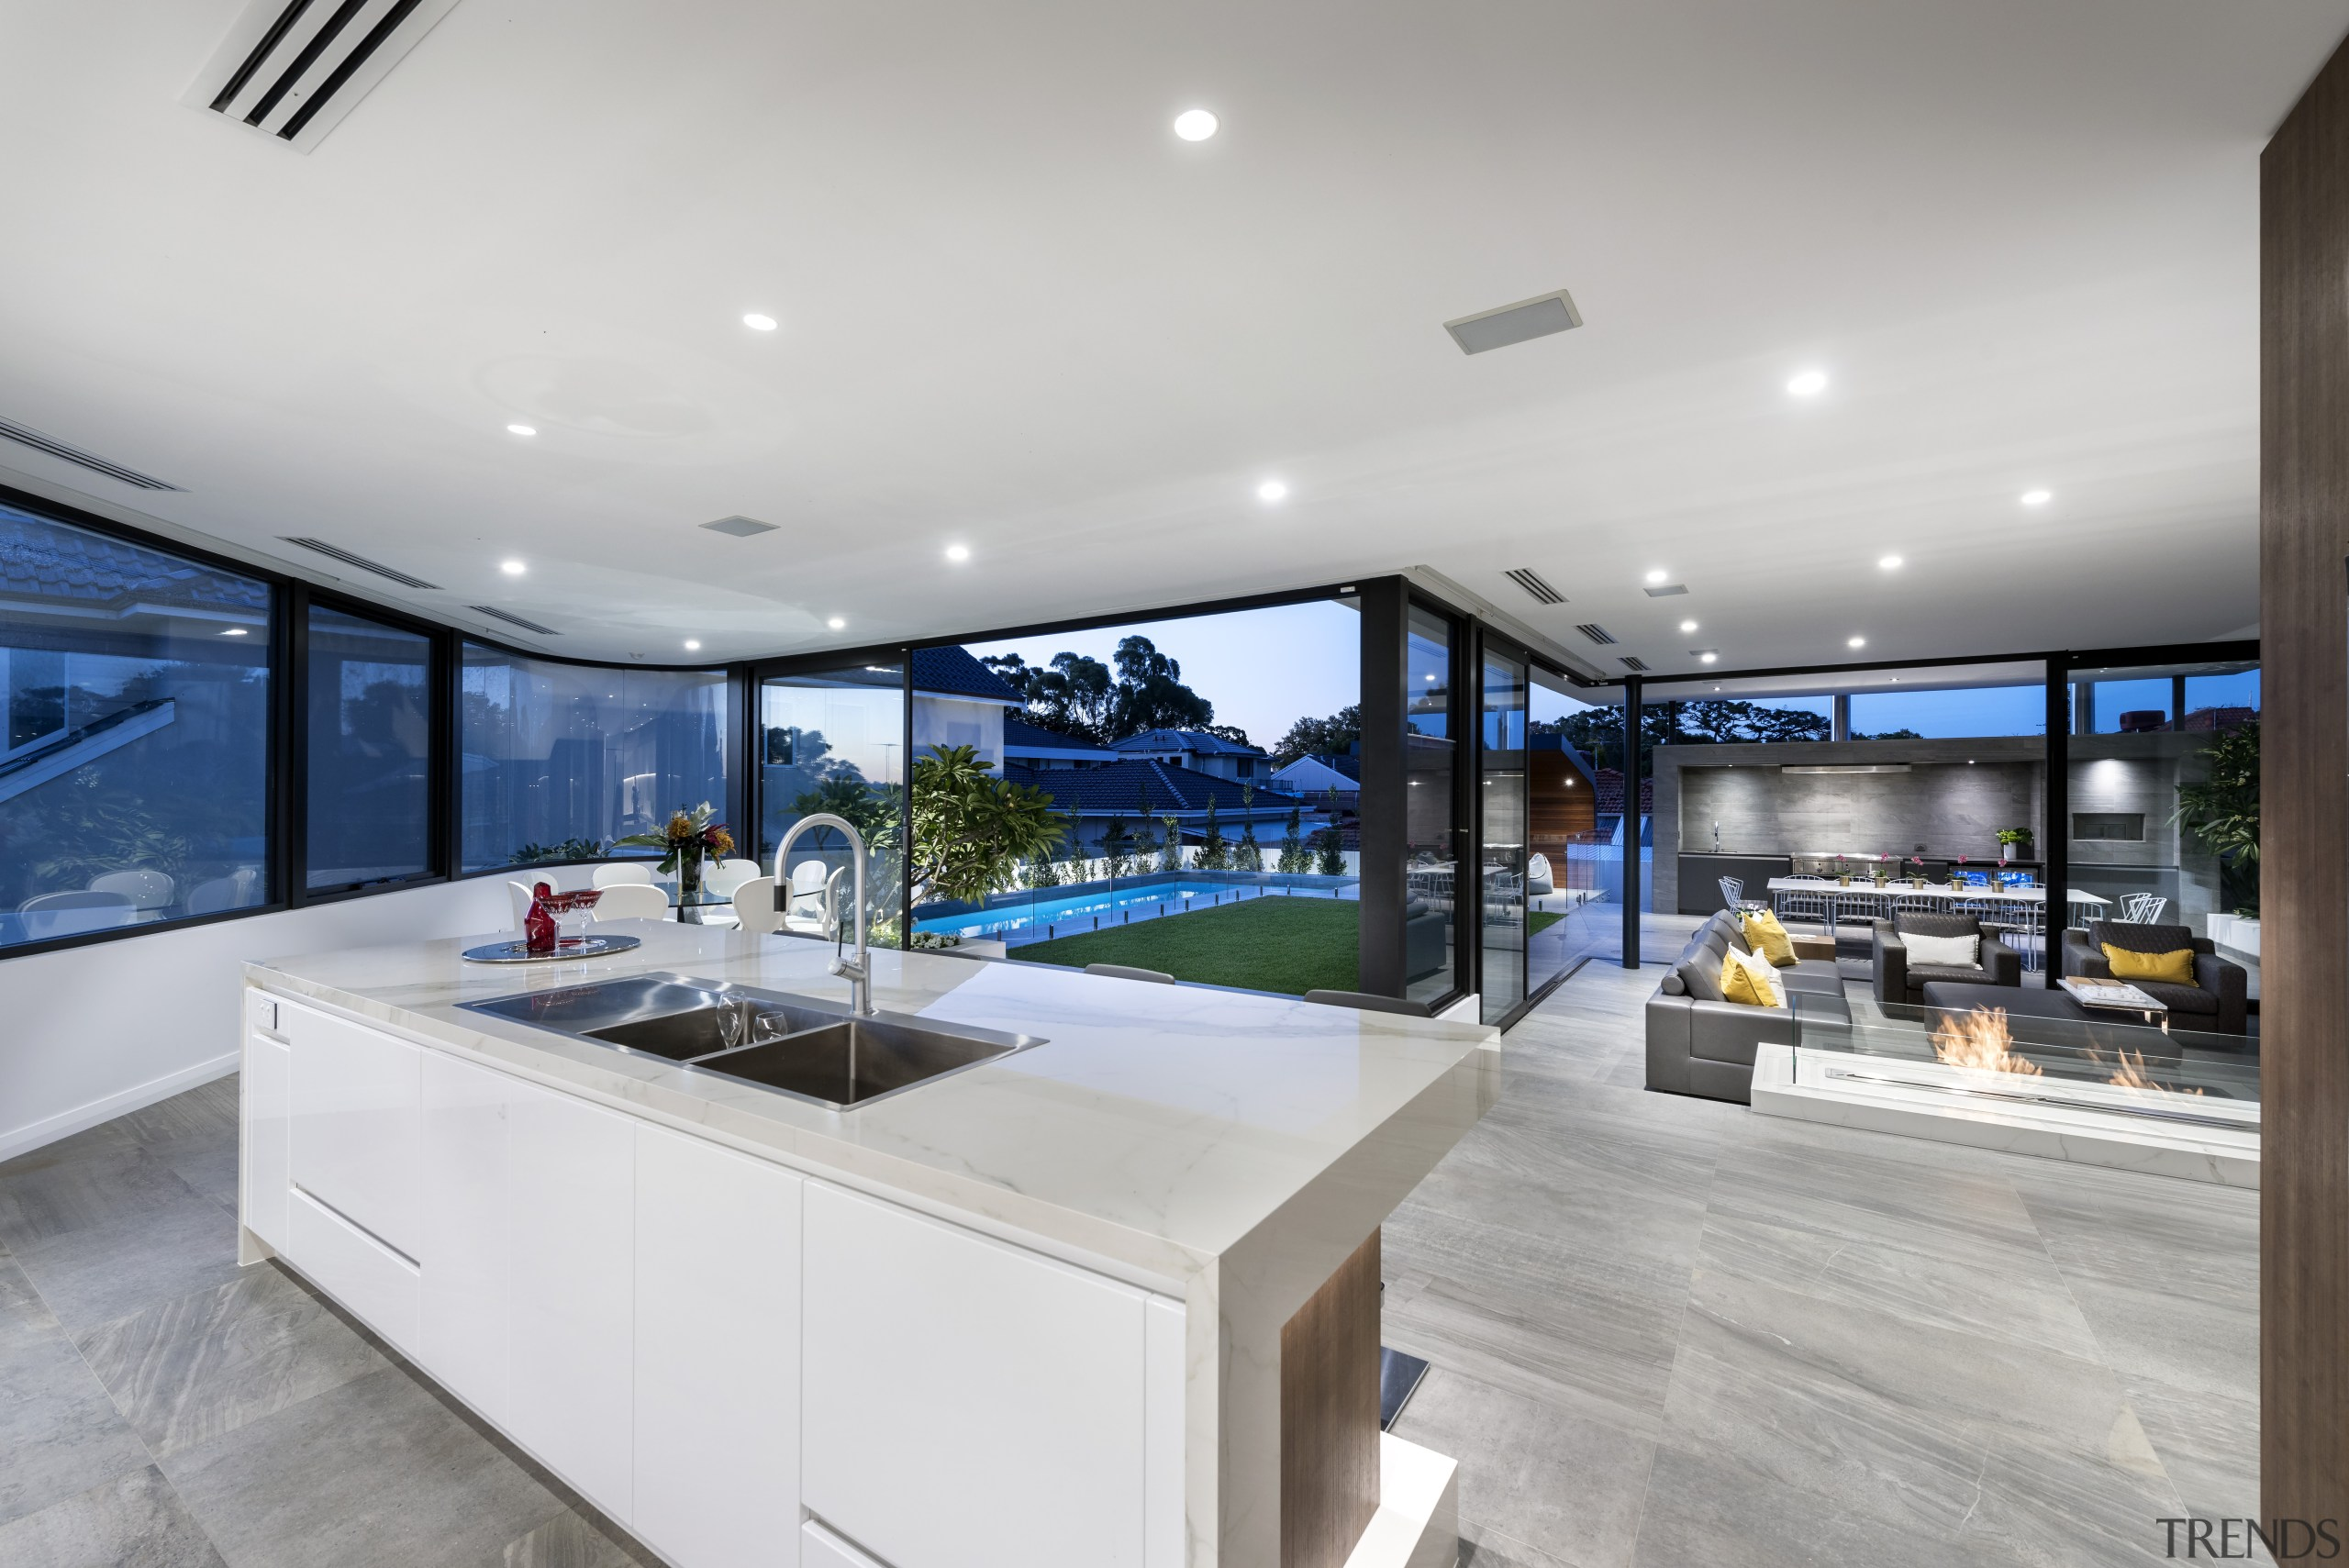 This kitchen links to indoor and outdoor living architecture, countertop, estate, house, interior design, kitchen, property, real estate, gray